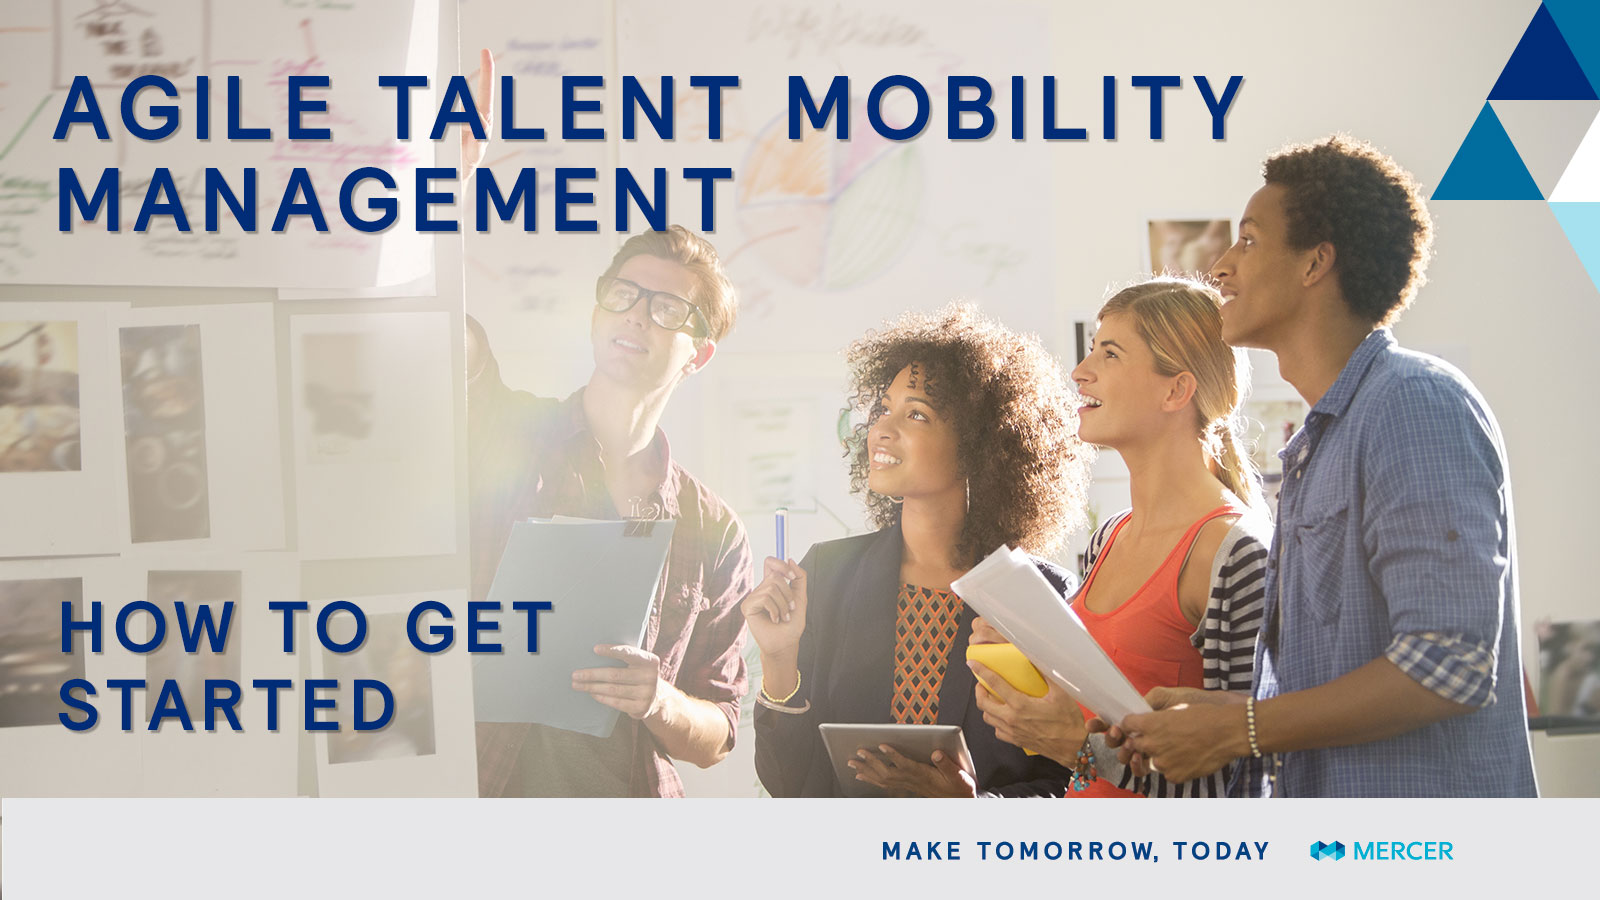 Agile Talent Mobility Management: How to Get Started